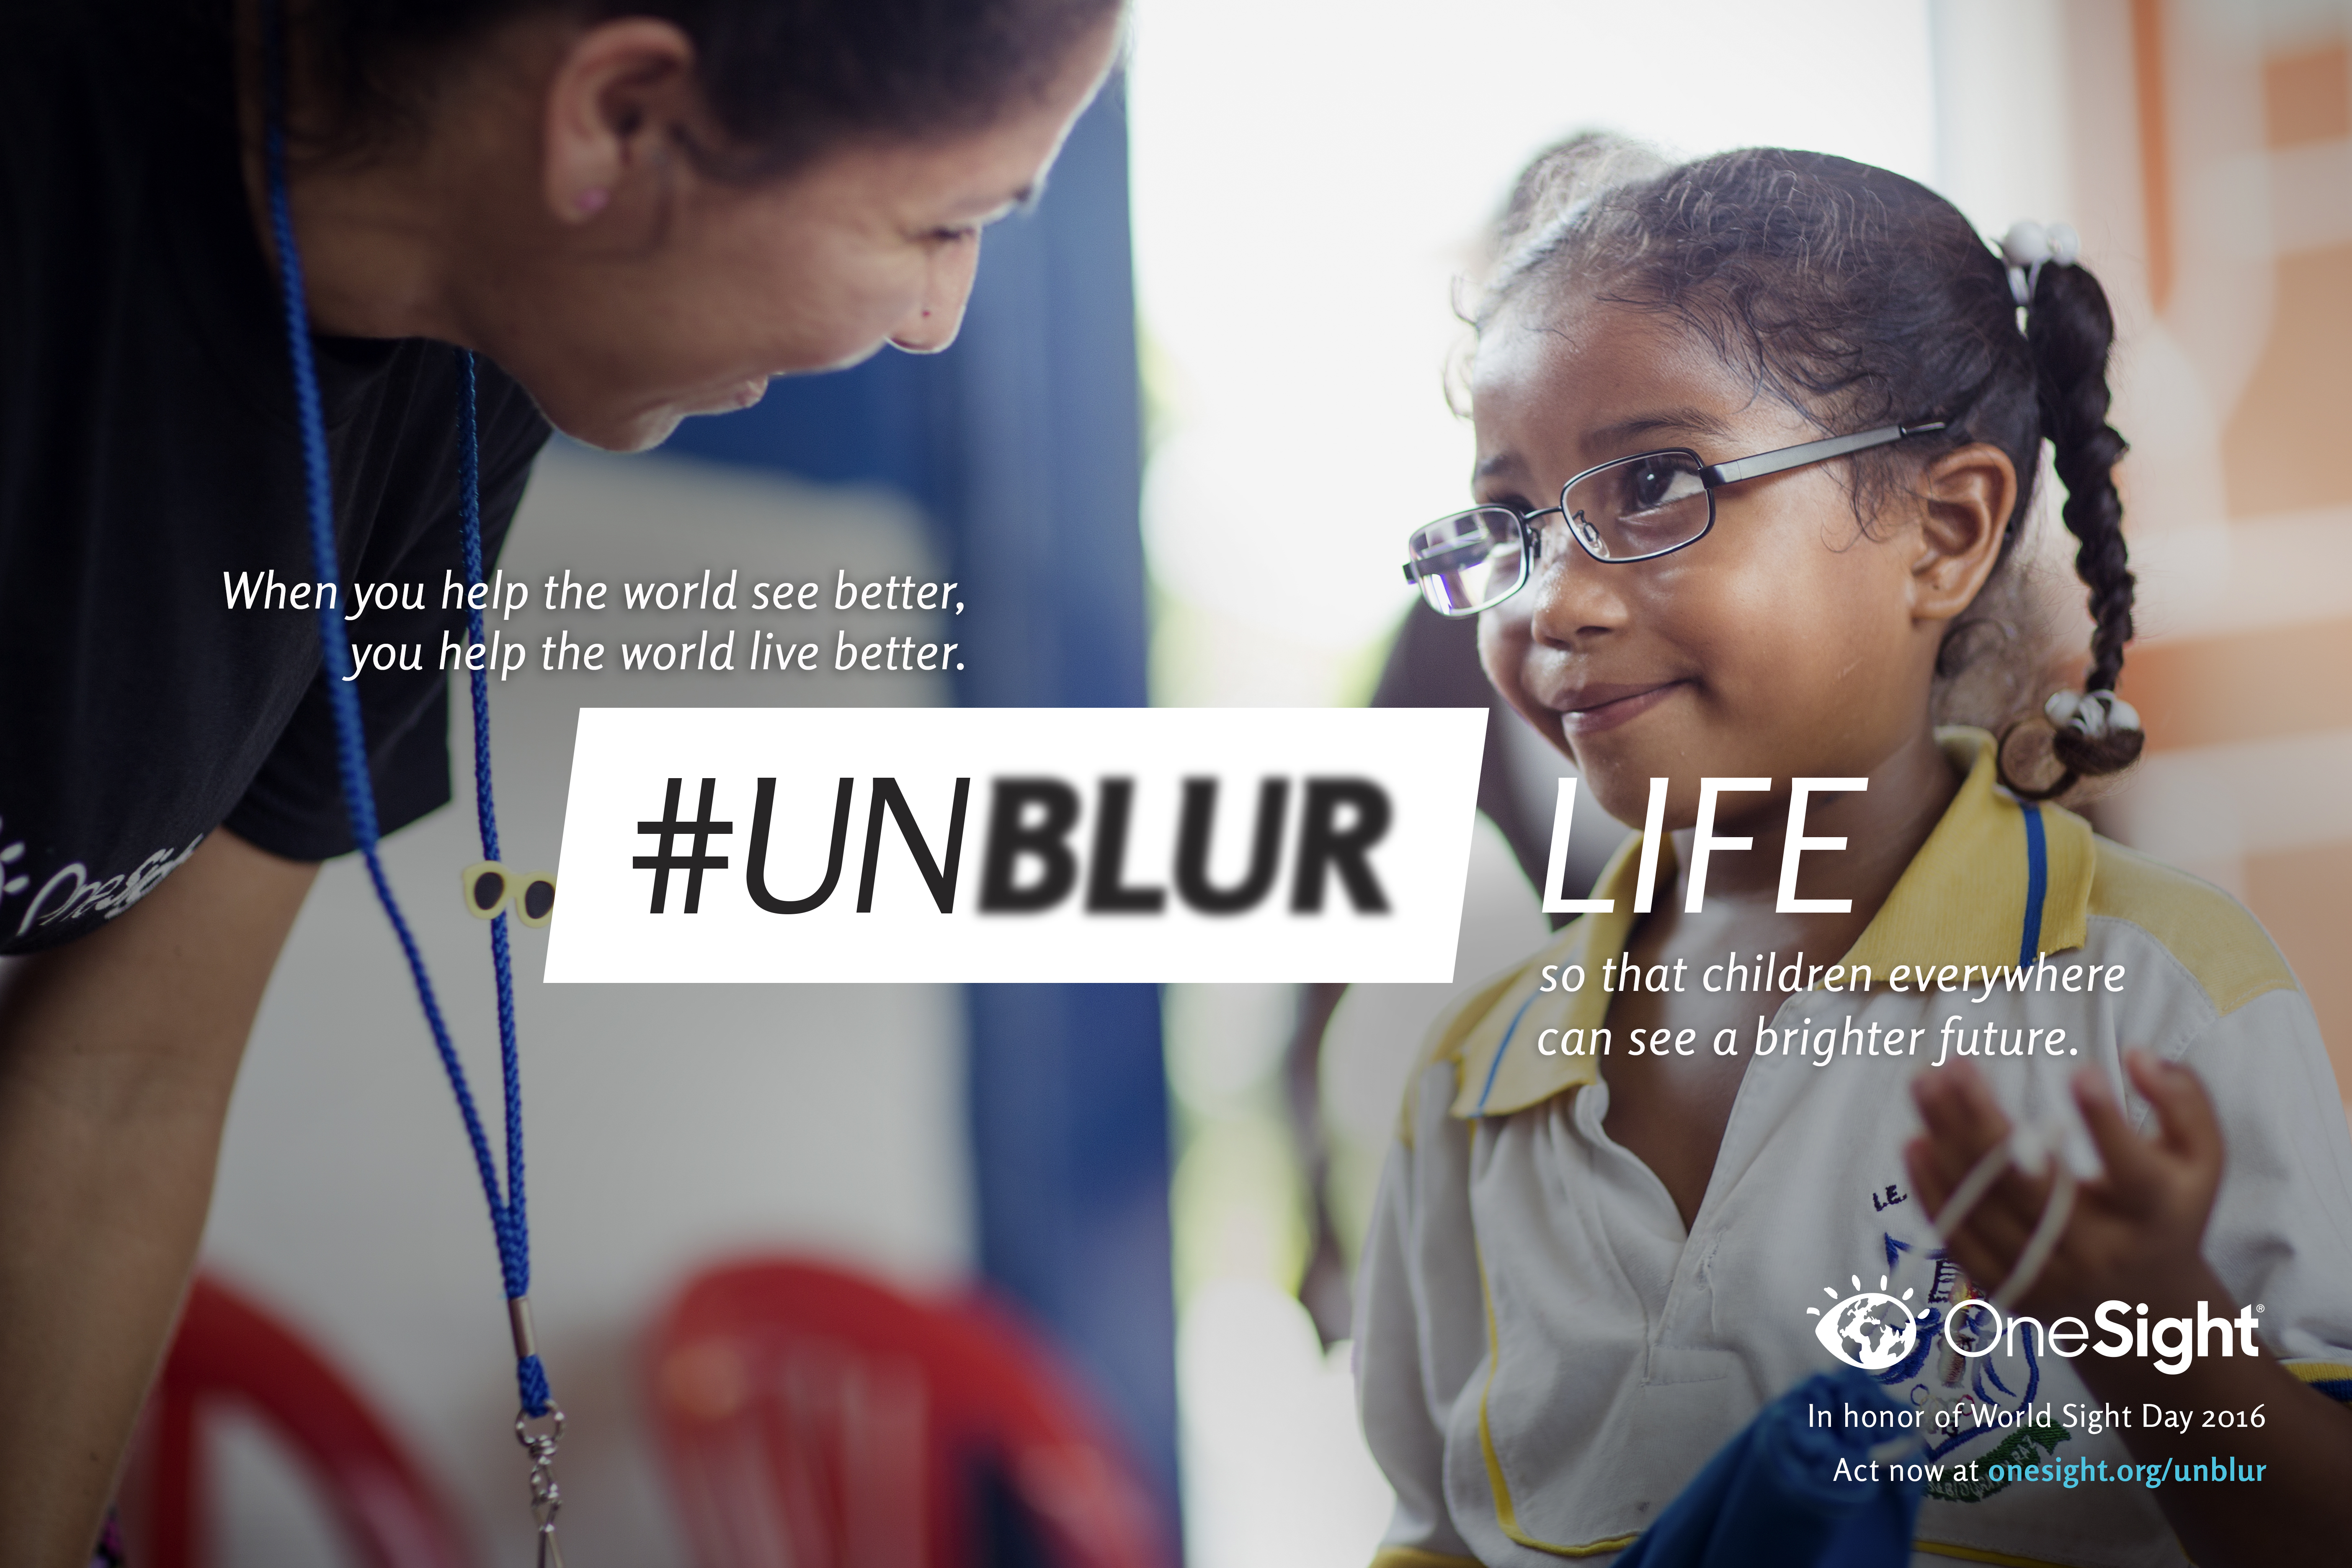 In honor of World Sight Day, OneSight launches their #UNBLUR campaign so that students everywhere can reach their full potential. (Graphic: Business Wire)